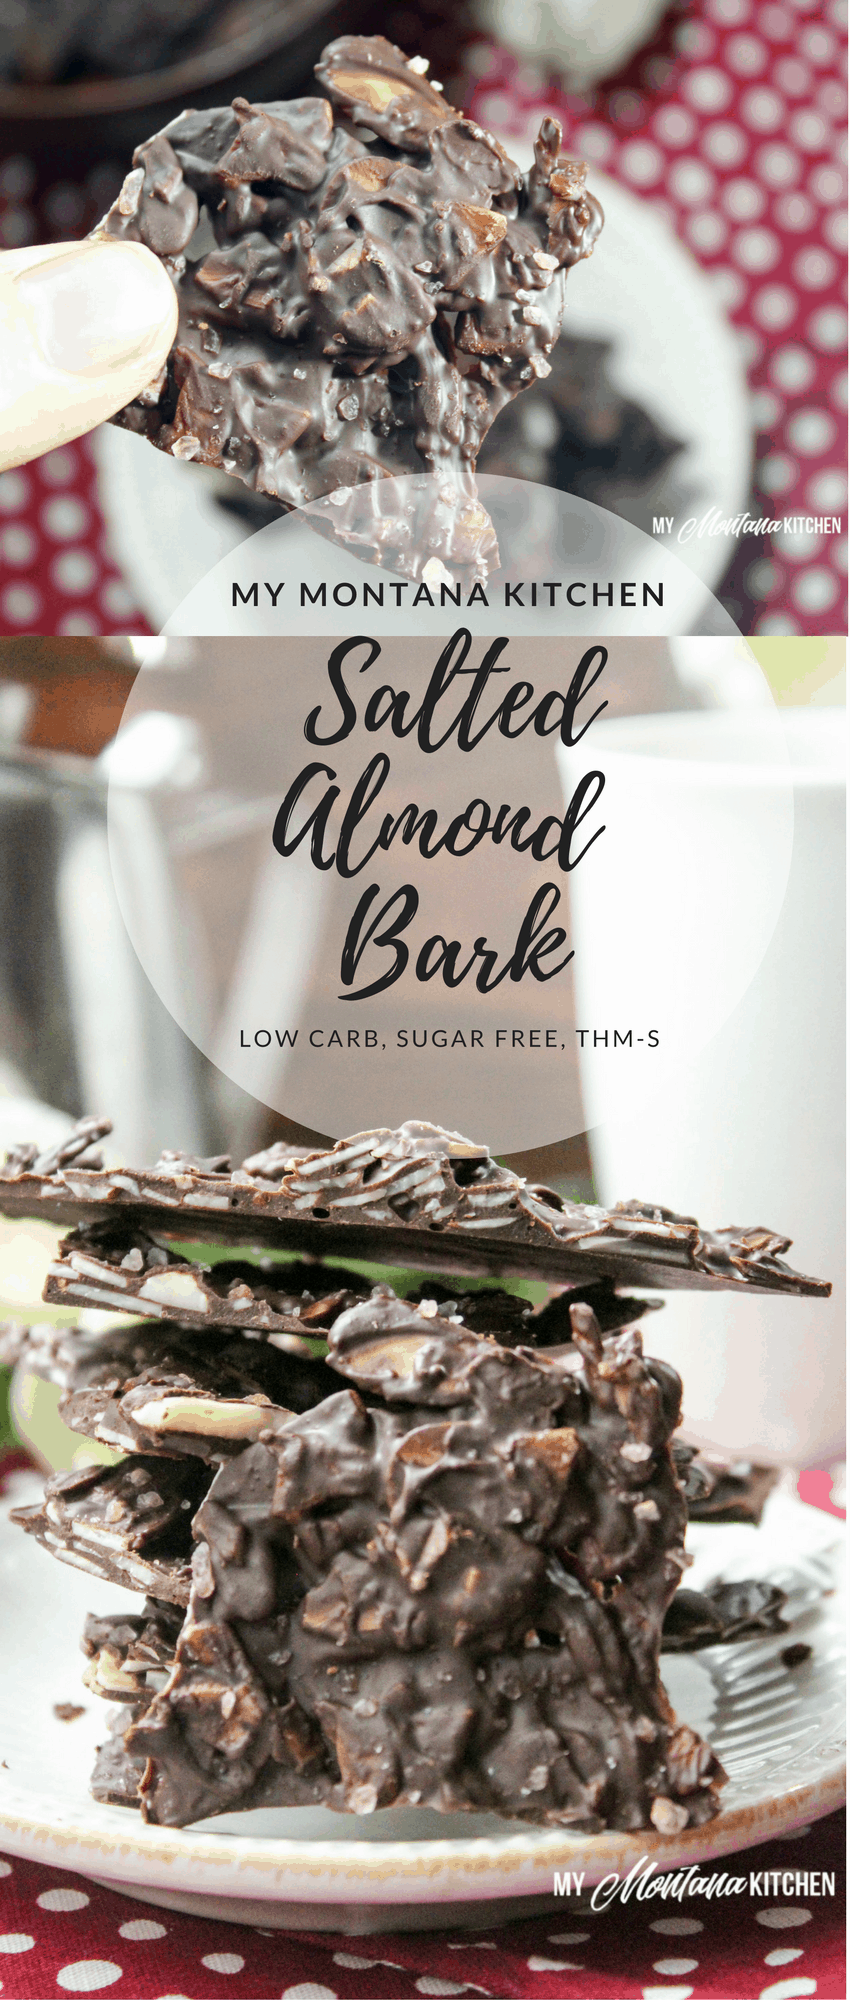 Salted Almond Bark (Low Carb, Sugar Free, THM-S, Dairy Free) #trimhealthymama #almondbark #lowcarb #sugarfree #thm #mymontanakitchen #chocolatebark